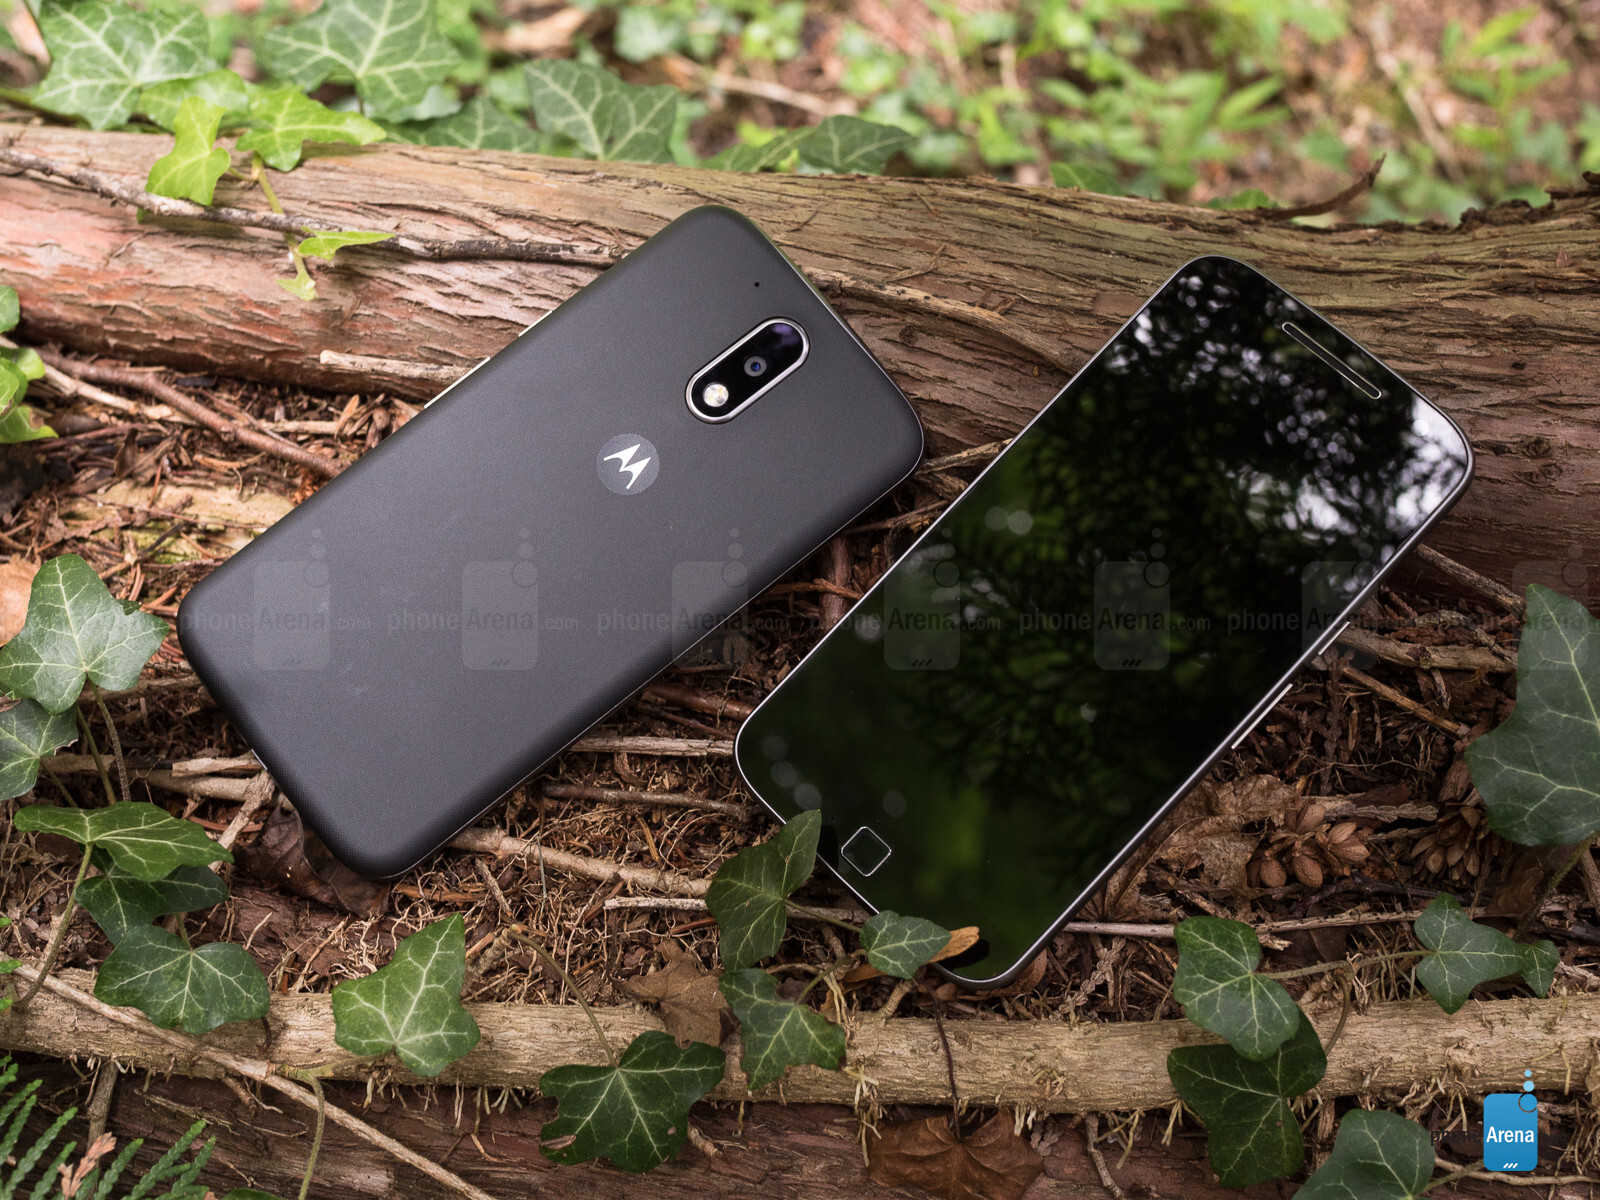 Moto G4 and G4 Plus Review - PhoneArena